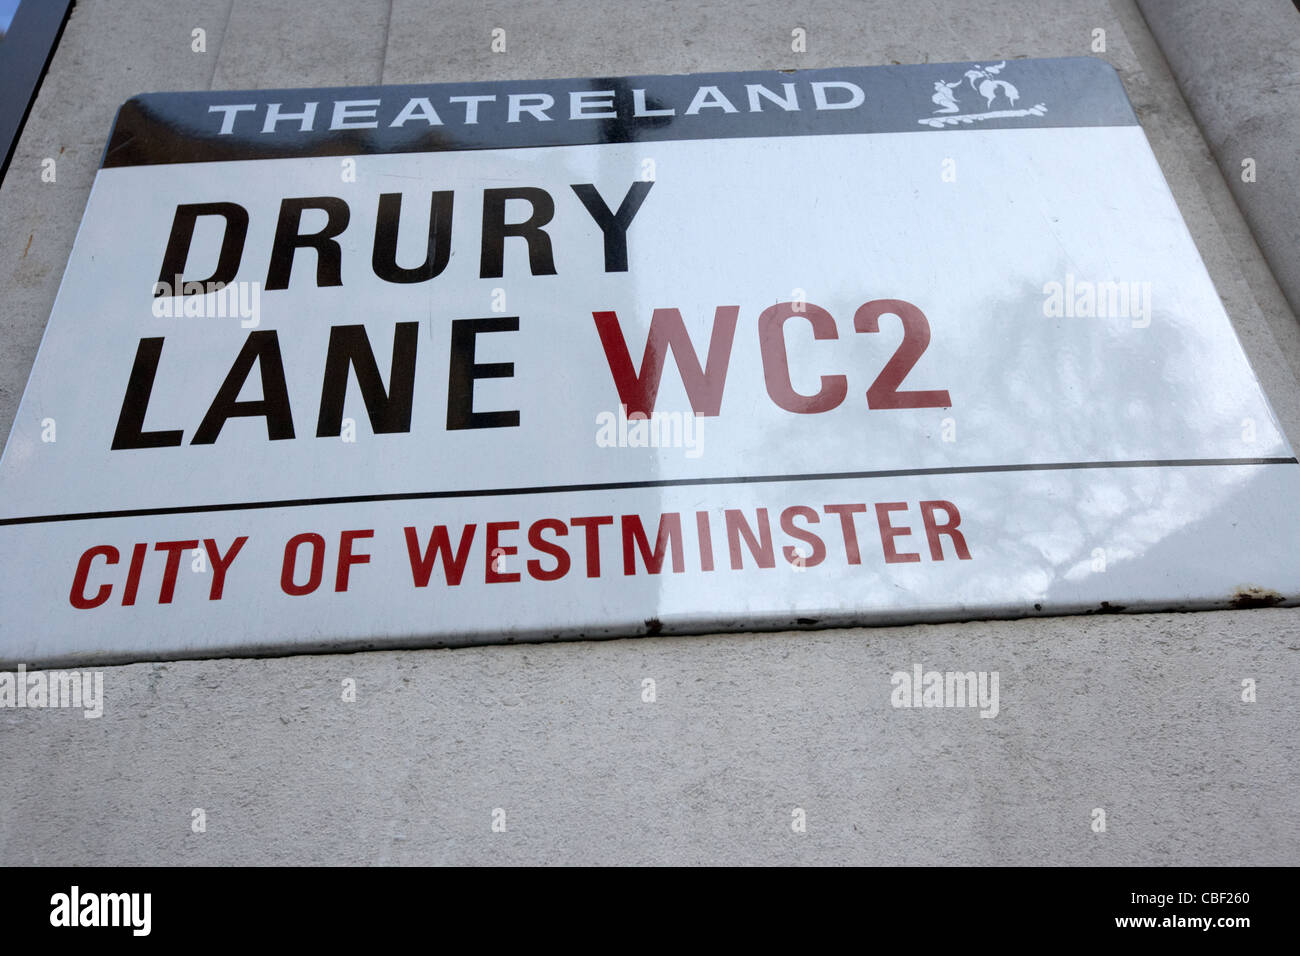 drury lane theatreland streetsign in london england uk united kingdom - Stock Image